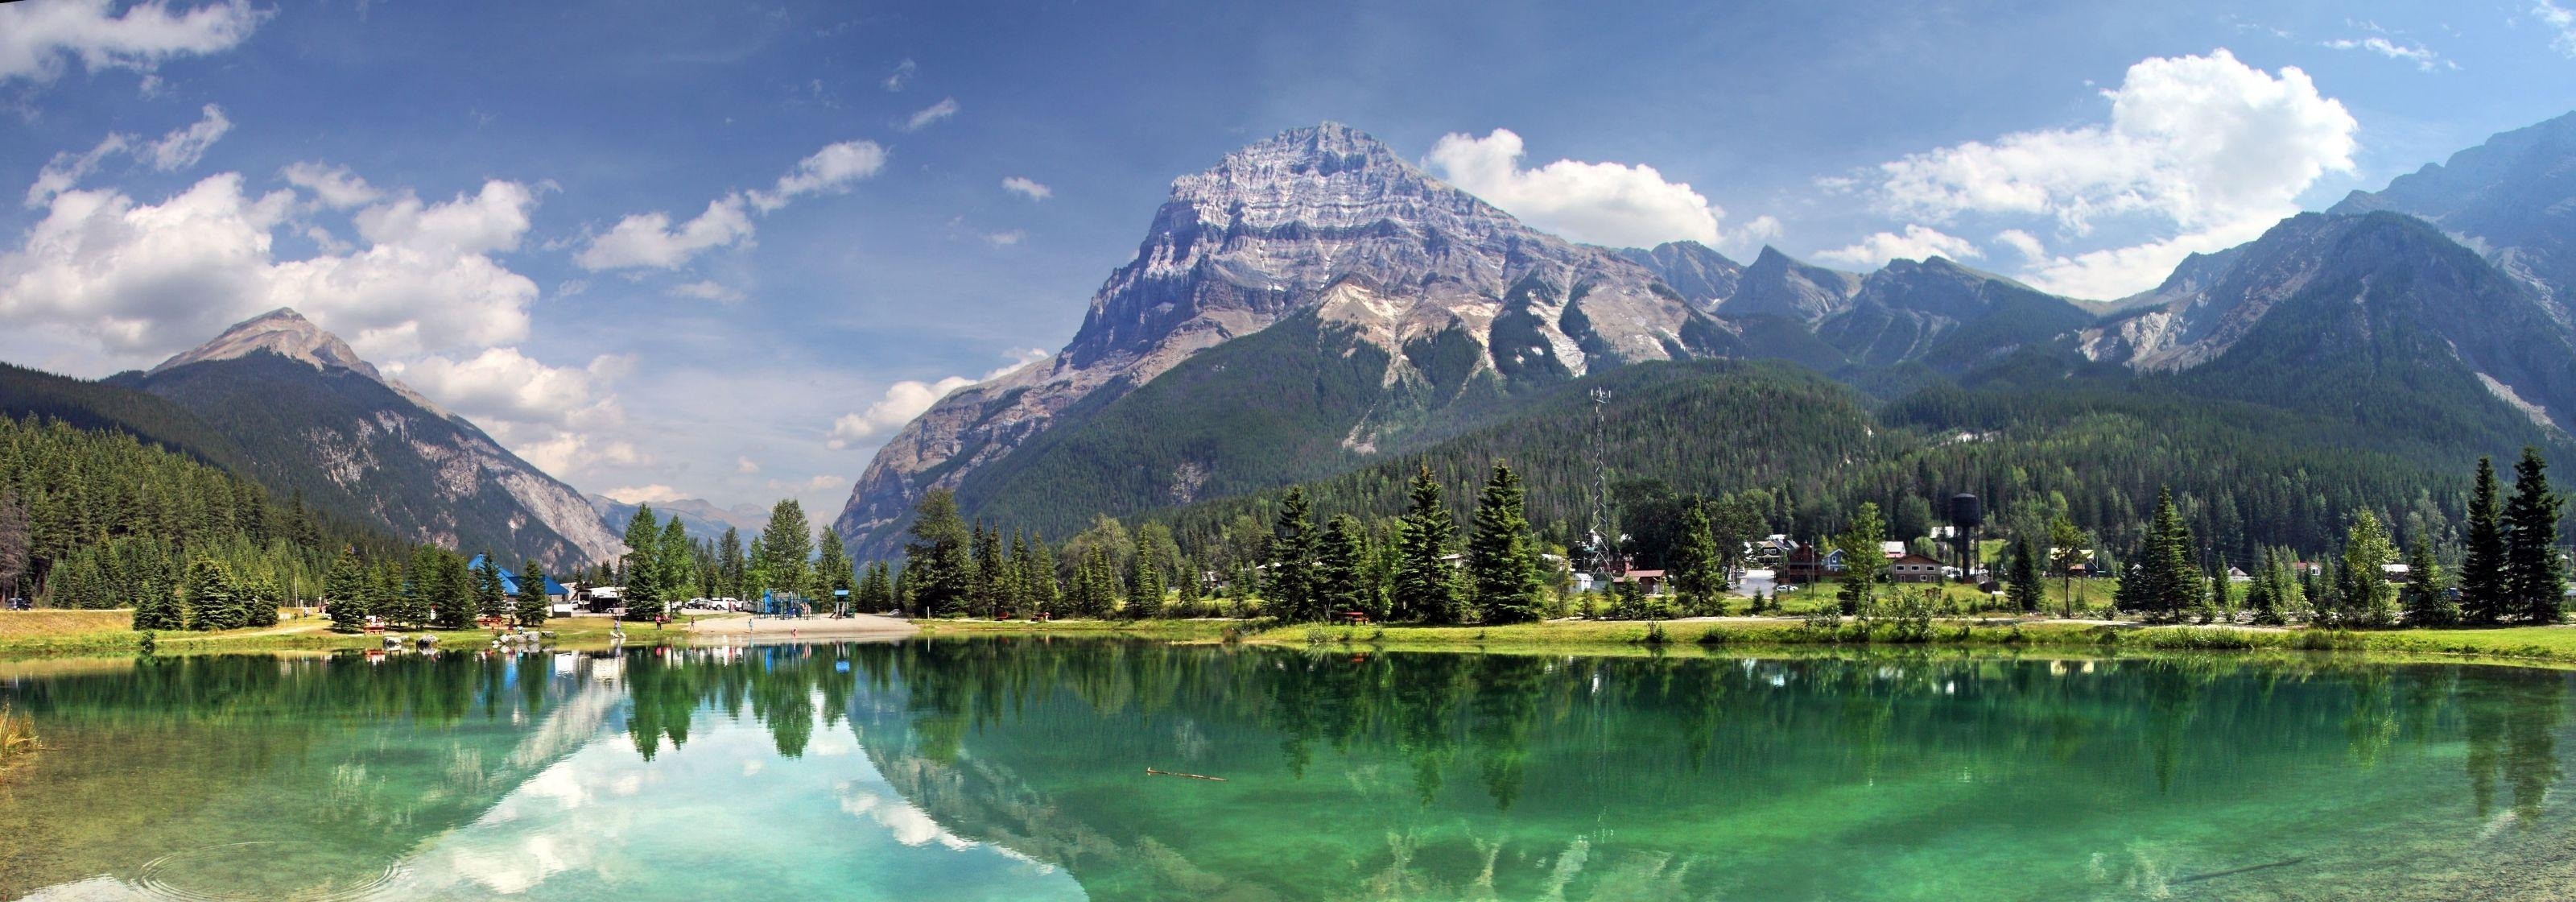 Things to do in British Columbia